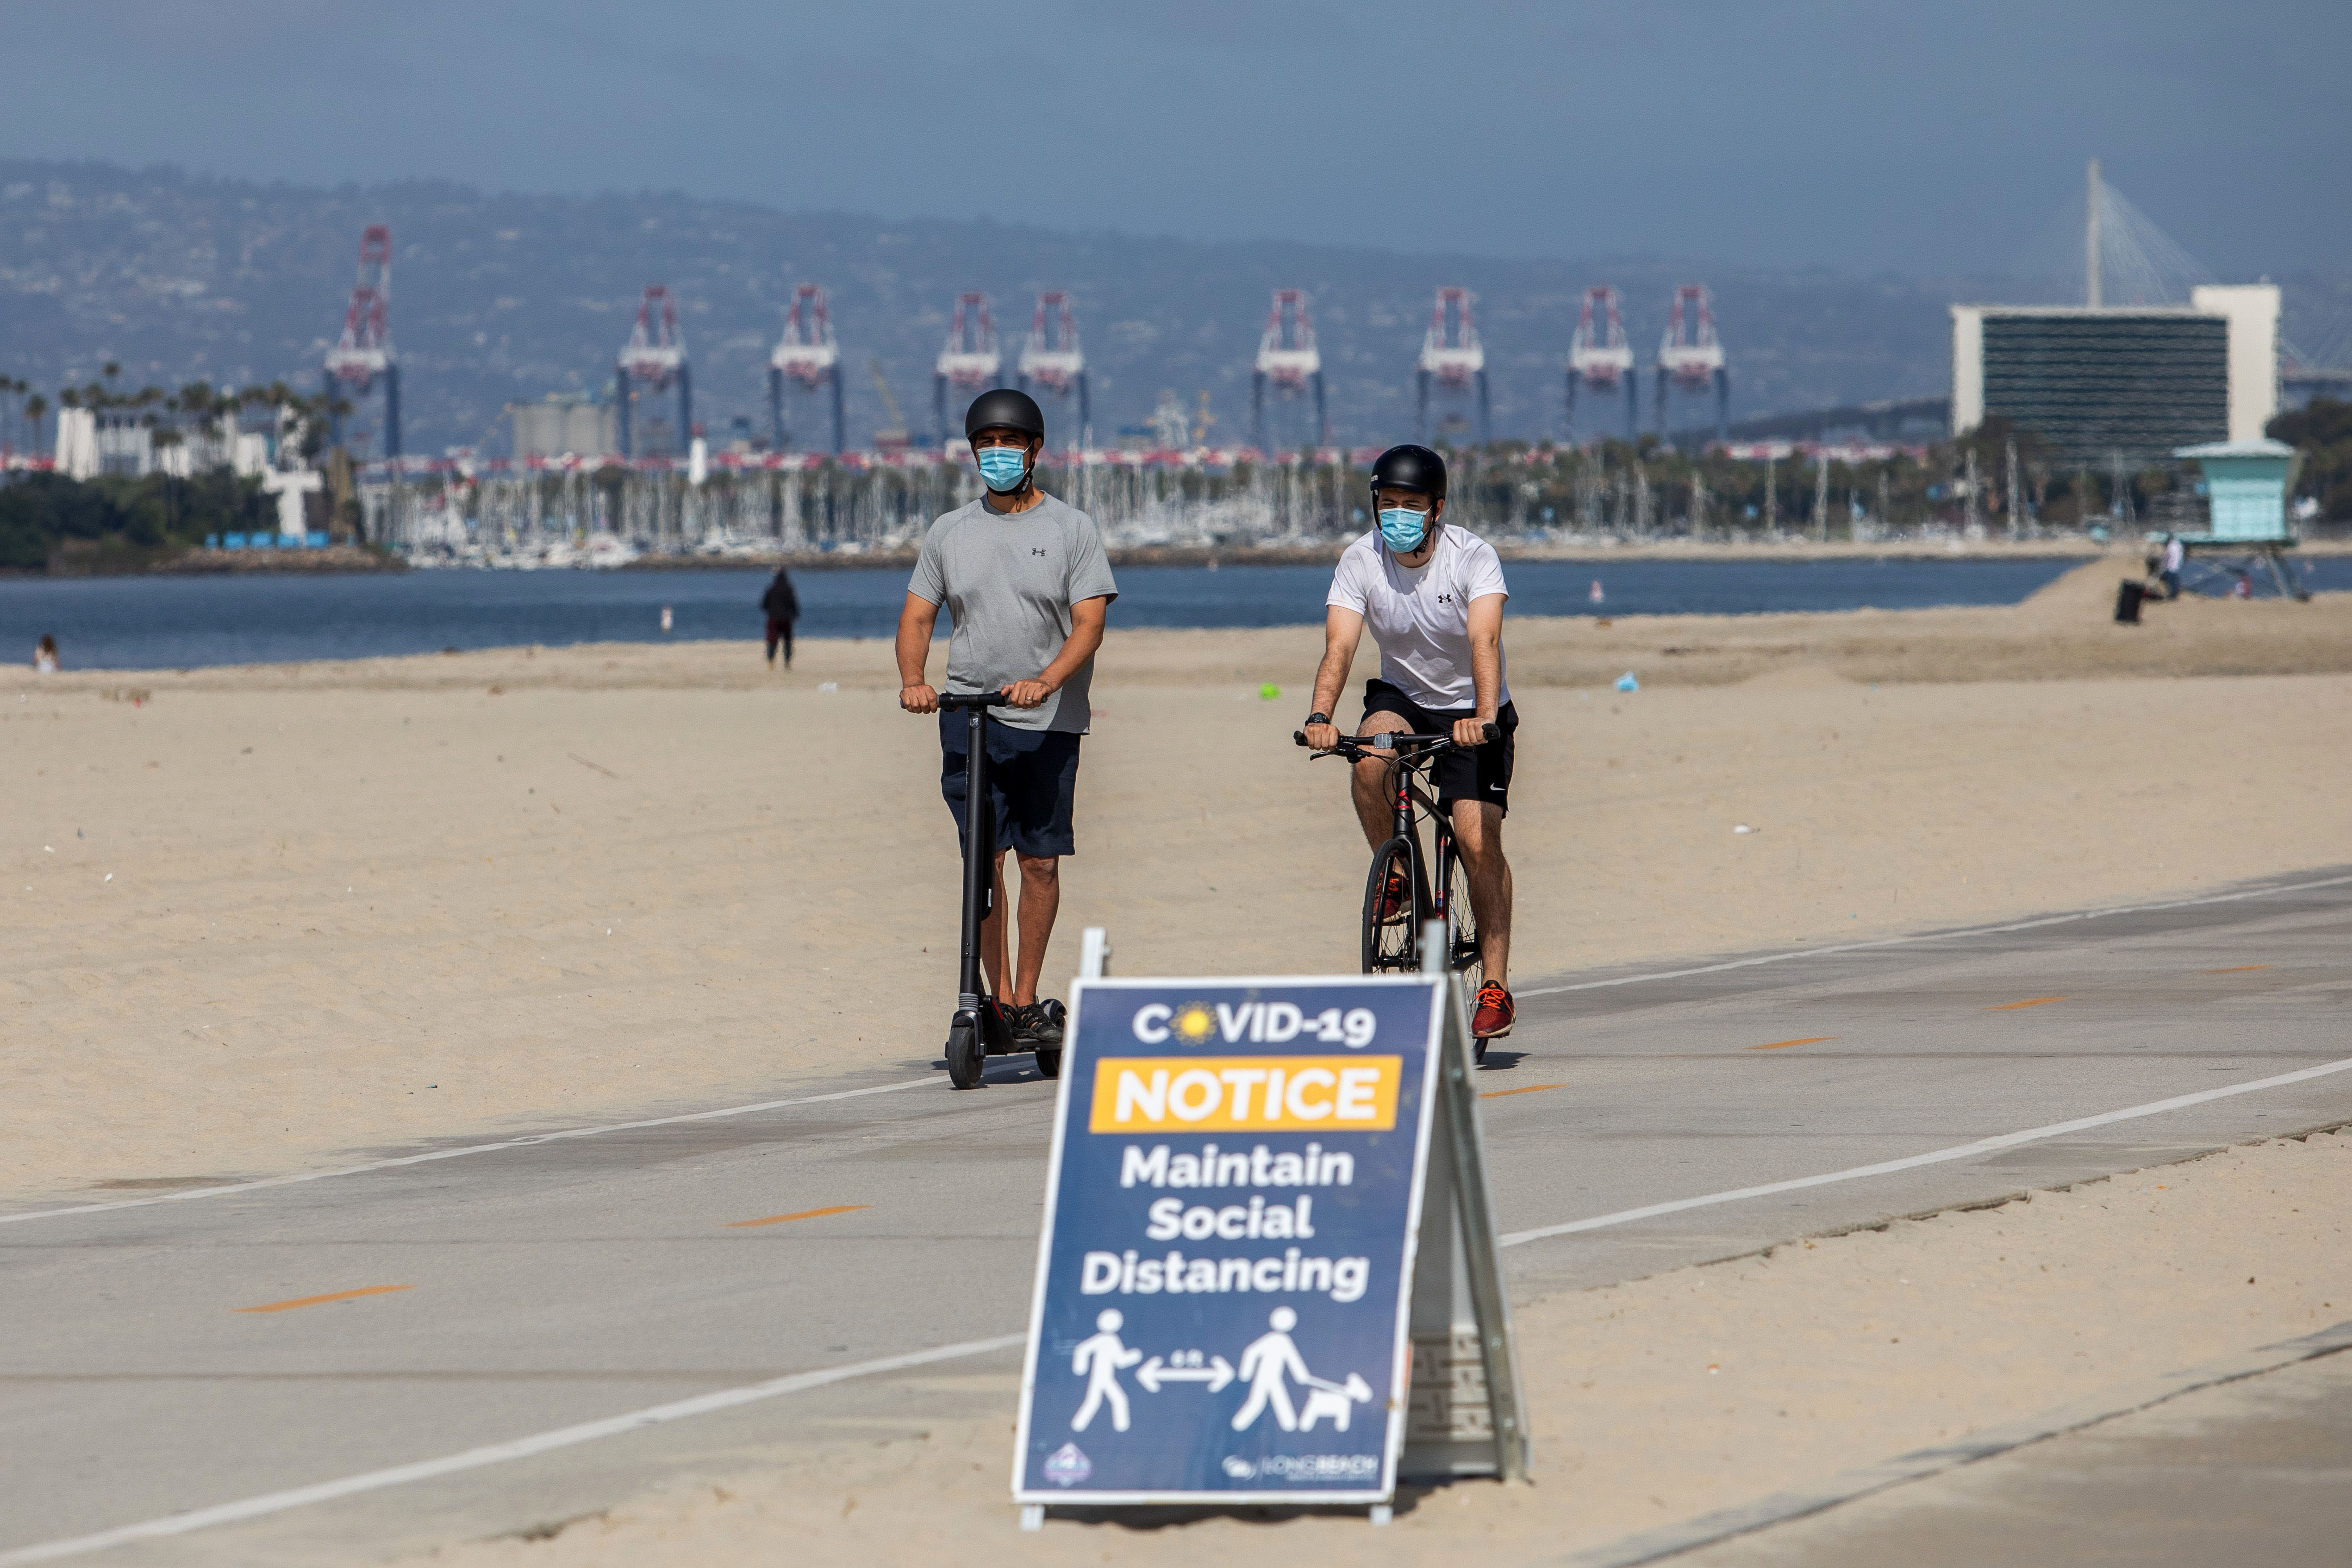 A sign about social distancing is seen on July 14 in Long Beach, California.